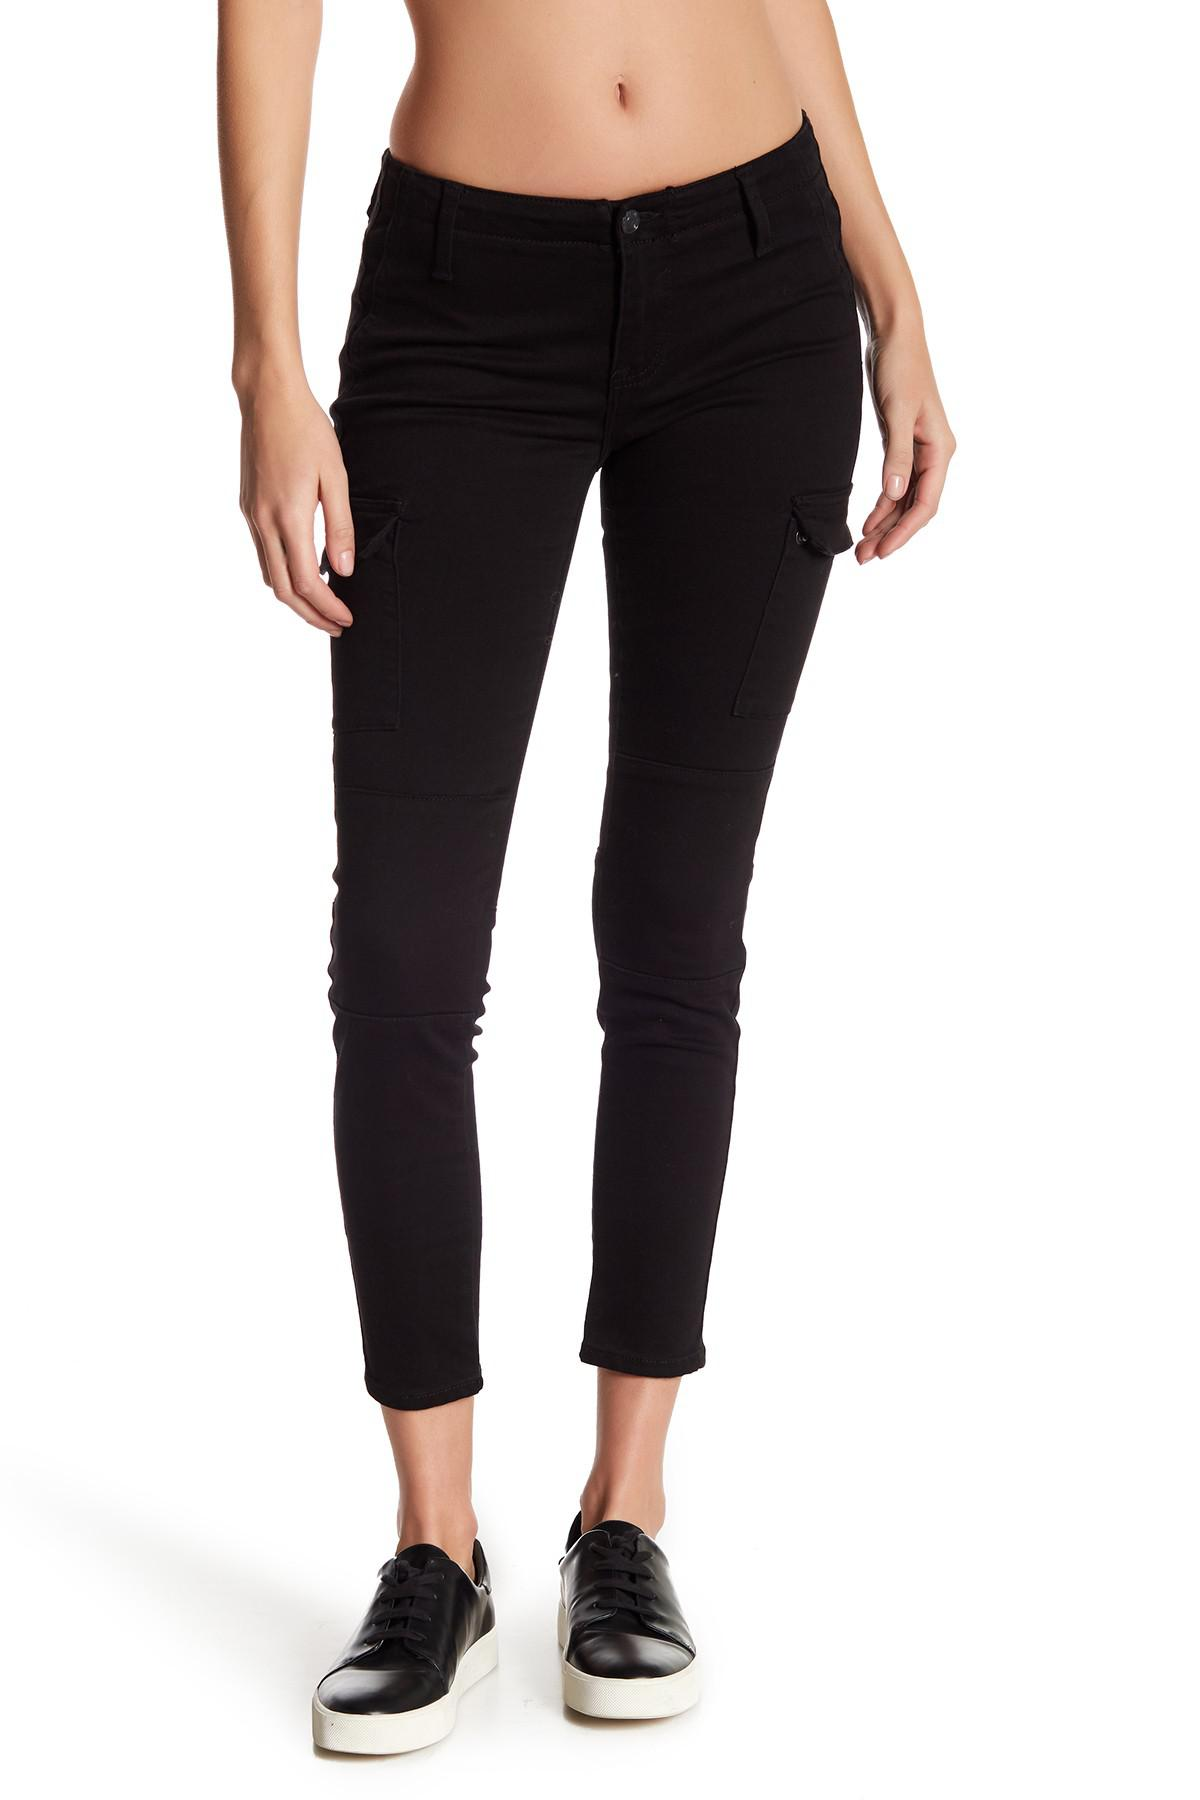 Find great deals on eBay for black cropped skinny trousers. Shop with confidence.